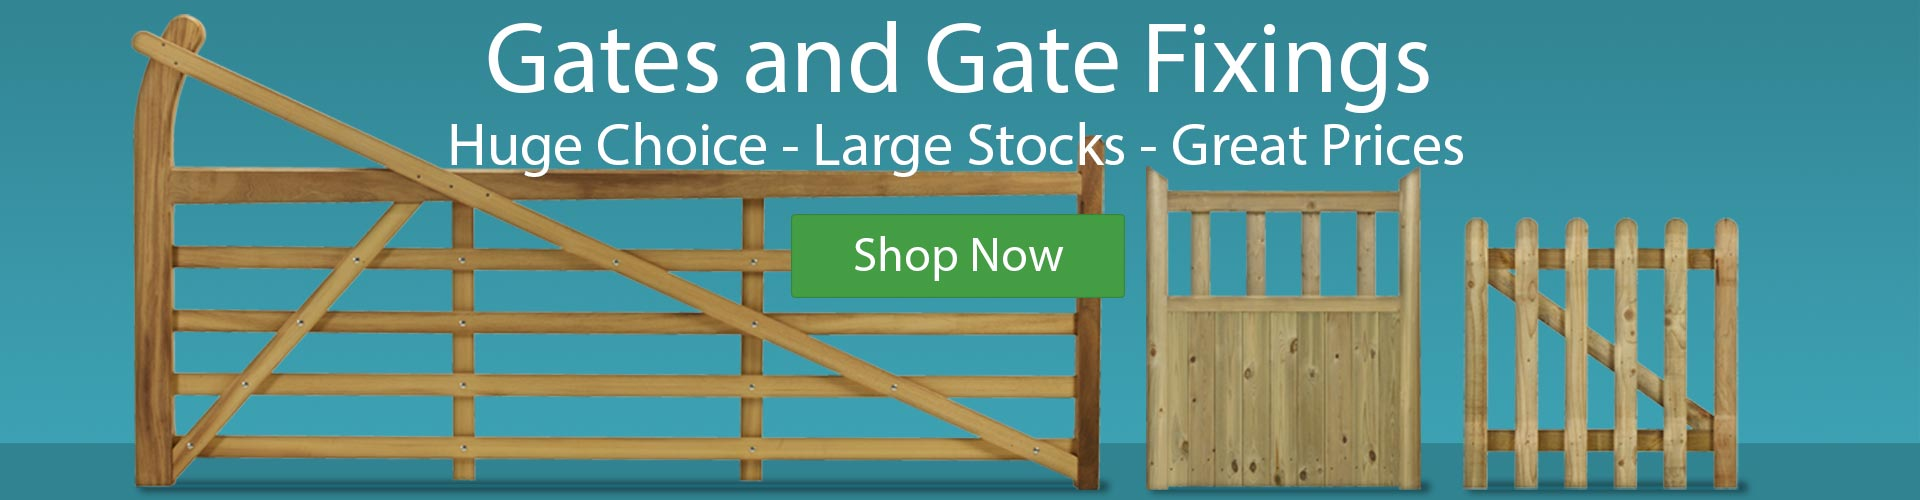 Gates and Gate Fixings